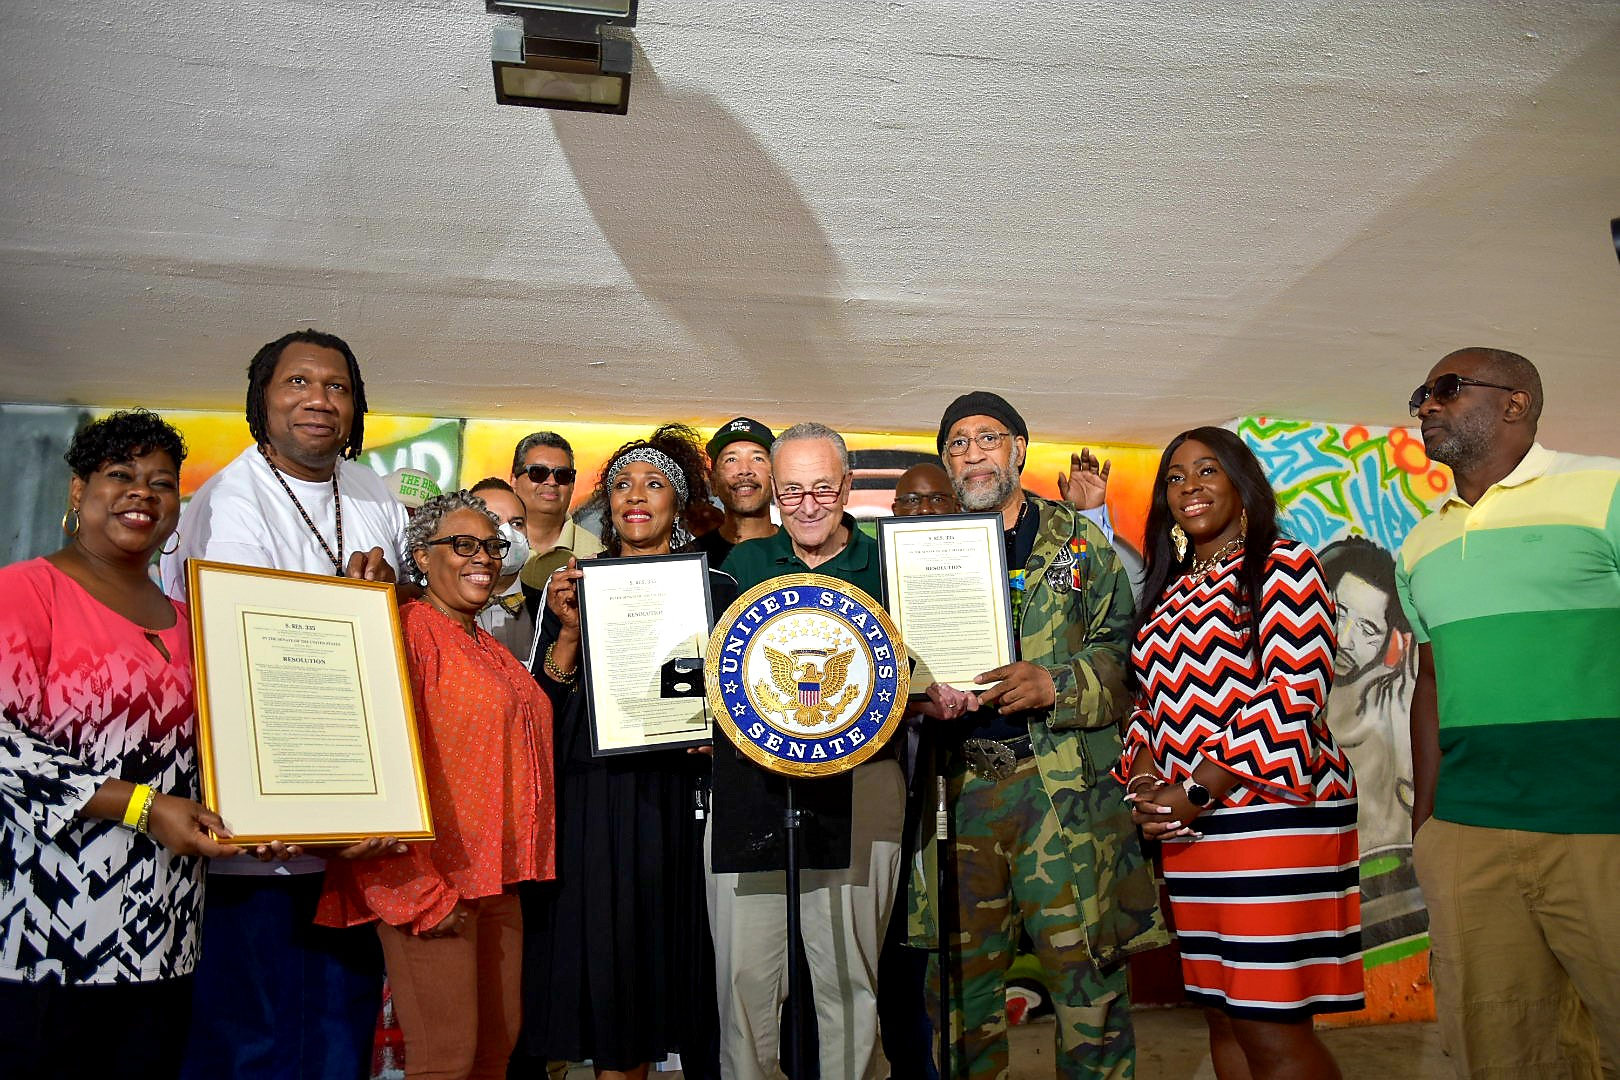 Schumer-Led Resolution Officially Recognizes The Bronx As The Birthplace Of Hip Hop